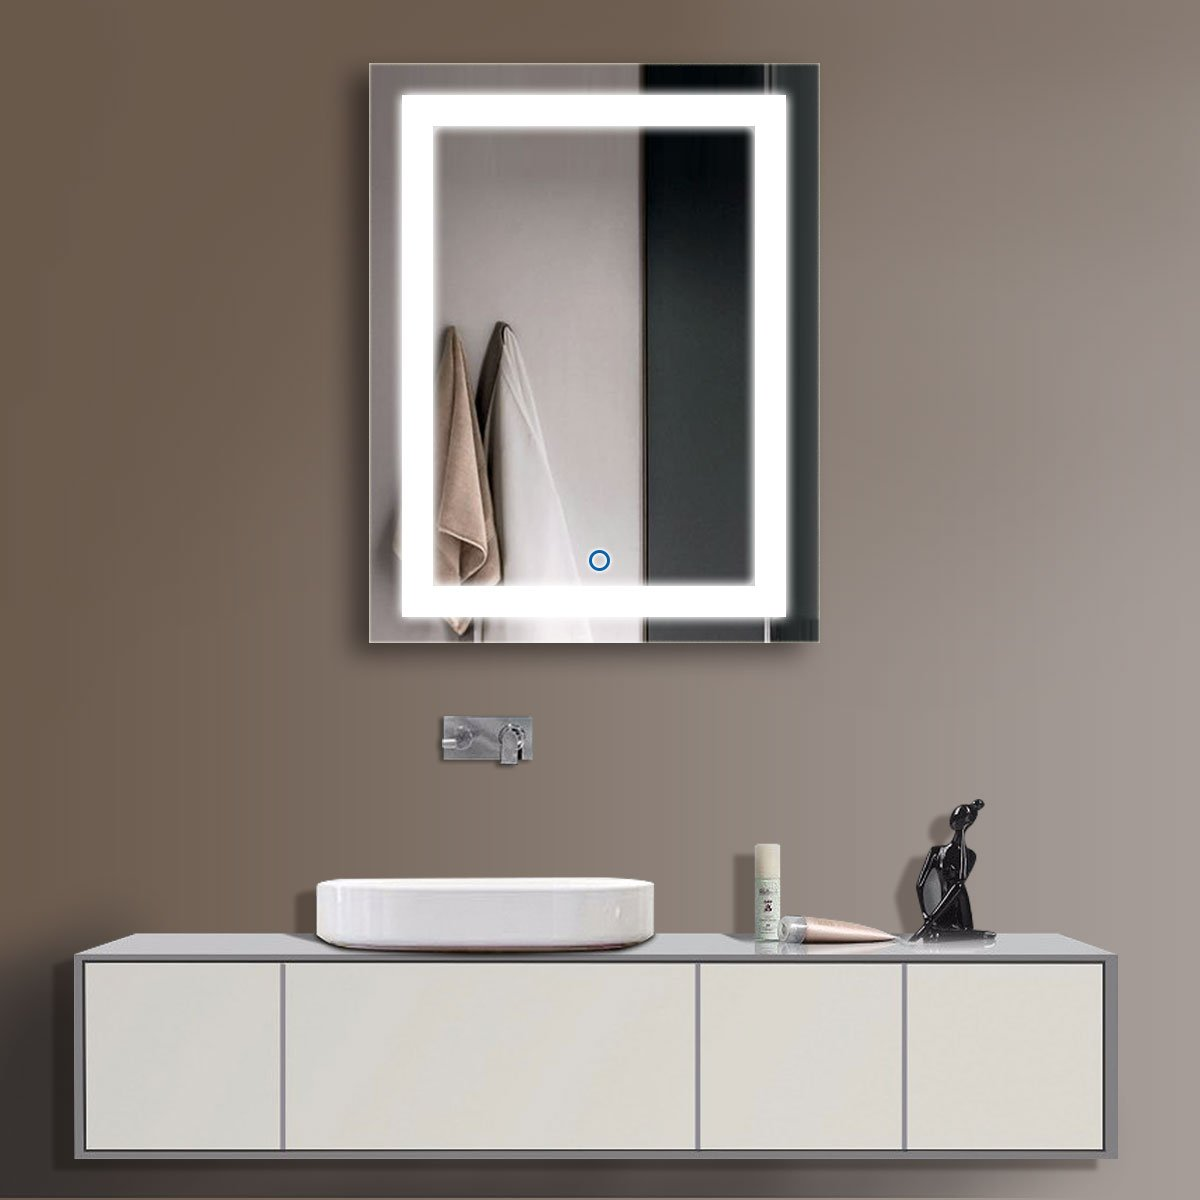 24 x 32 In Vertical LED Bathroom Silvered Mirror with Touch Button (C-CK168)